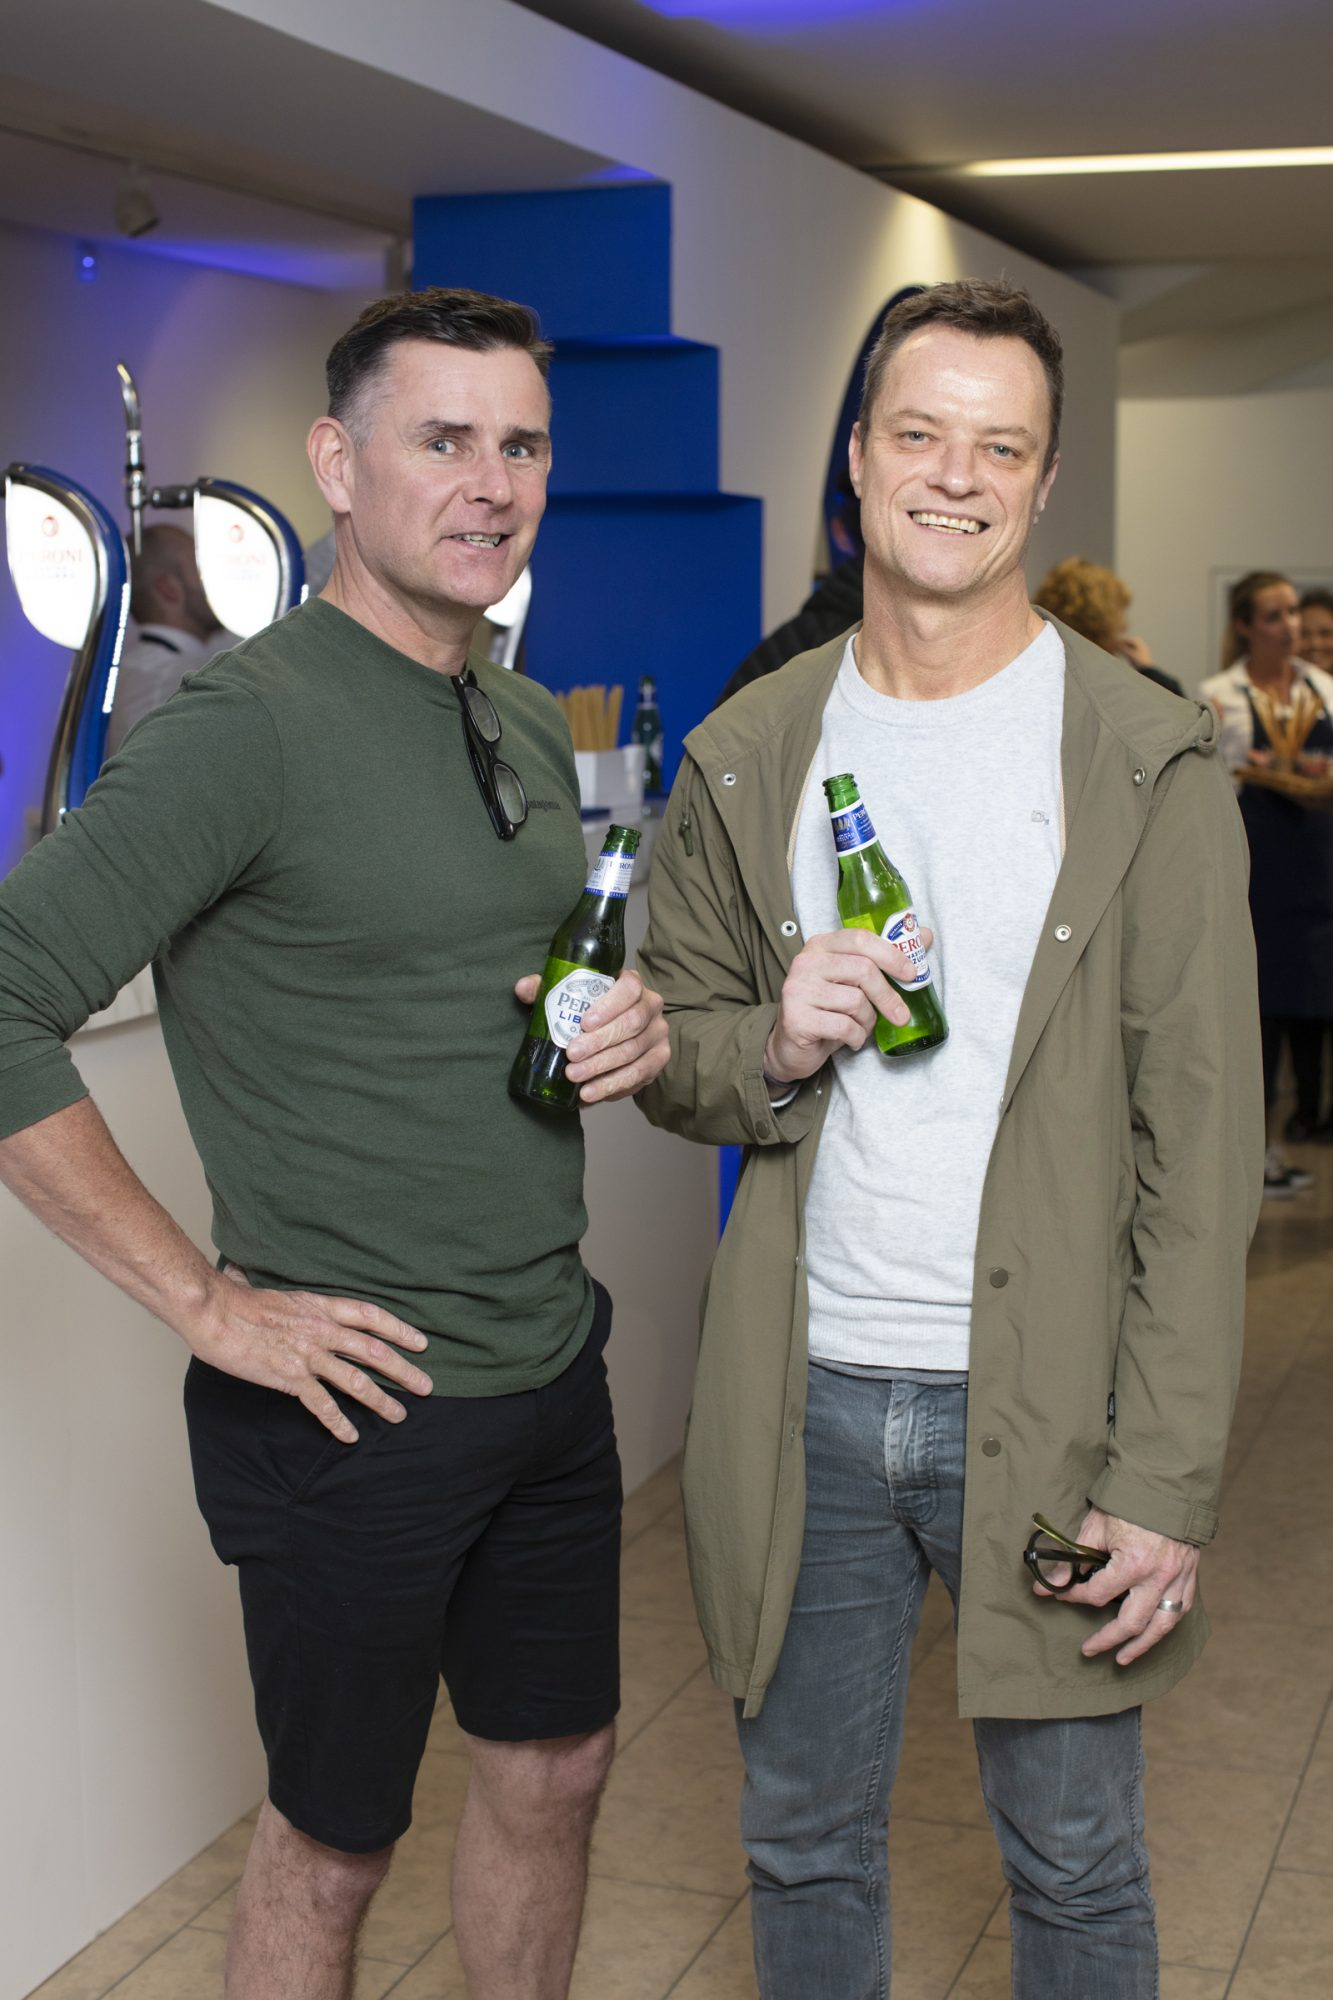 Shane Kinsella & Rory O'Neill pictured at the launch of The House of Peroni, which is open at the RHA in Dublin until Sunday, 1st September 2019. This year's residency sees the RHA transformed into a stylish Peroni inspired experience, filled with food, drink and design. www.thehouseofperoni.com Photo: Anthony Woods.